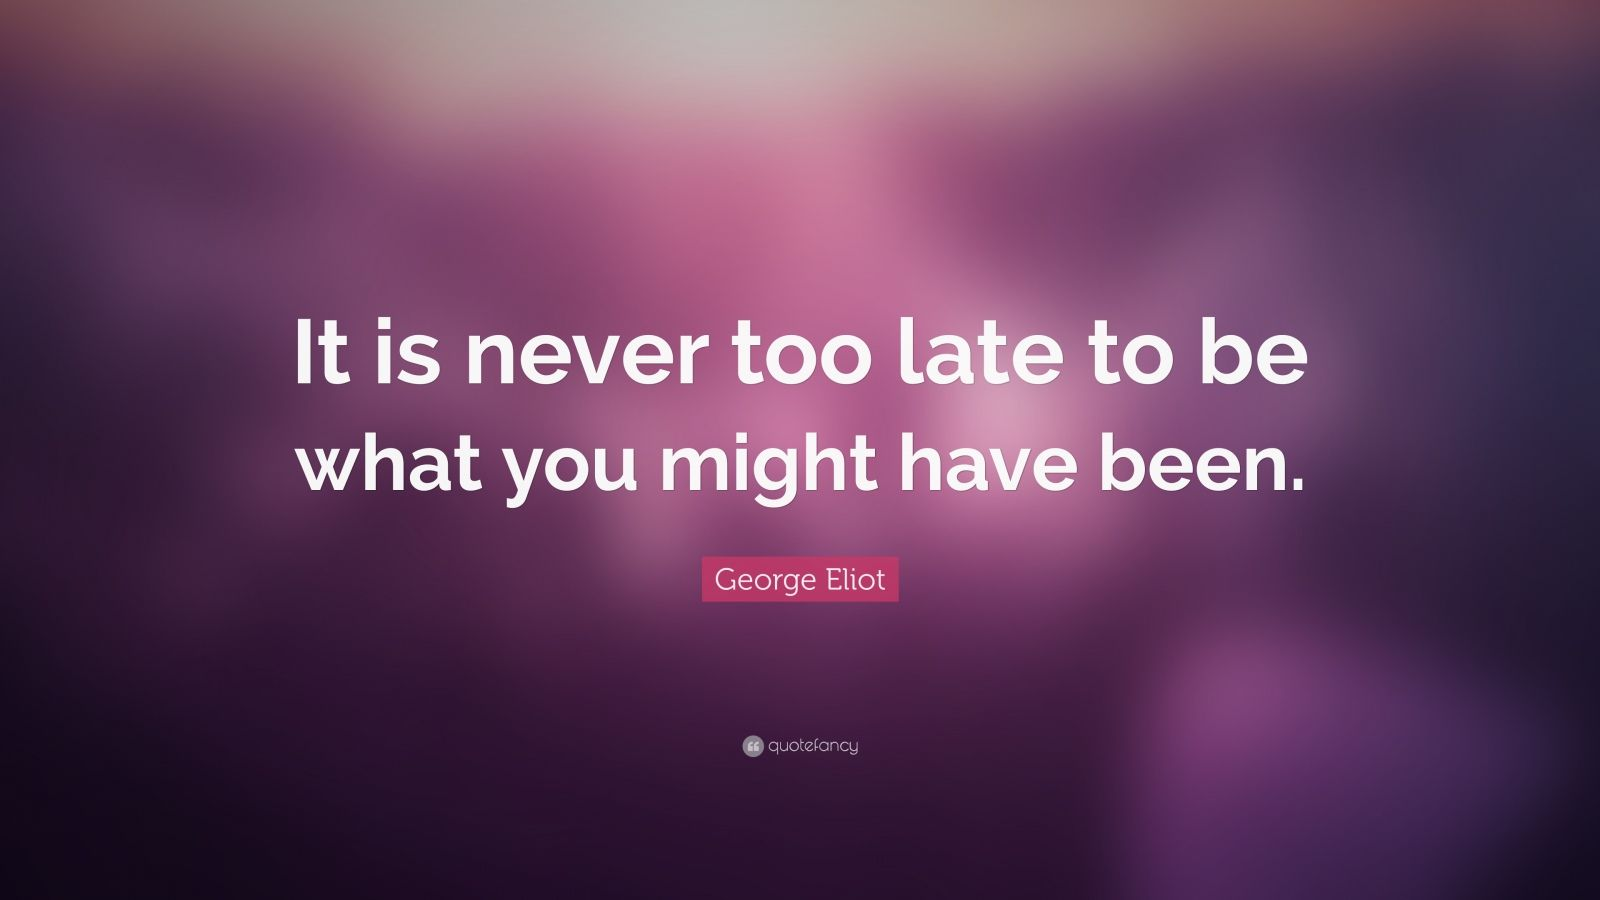 it is never too late to